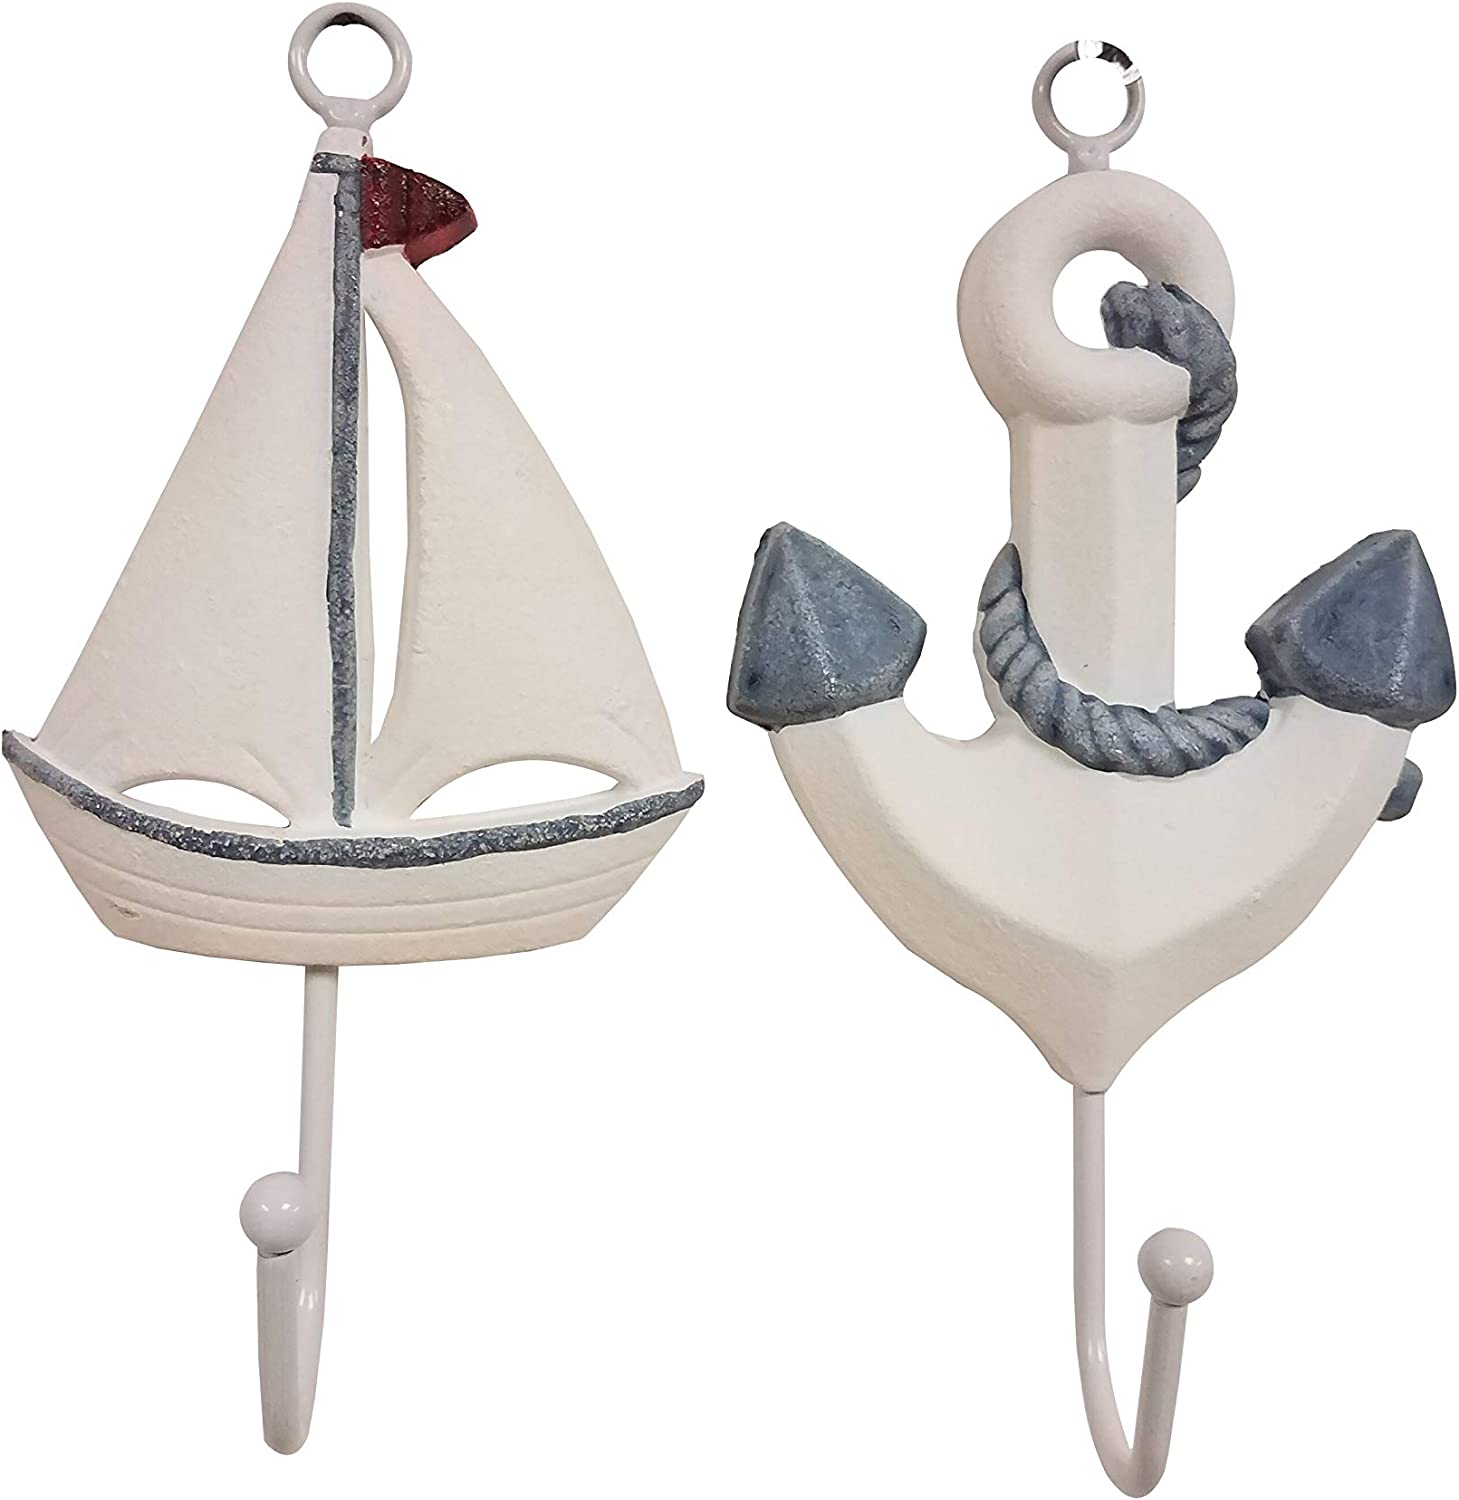 Sailboat & Ship's Anchor Wall Decor Hangers